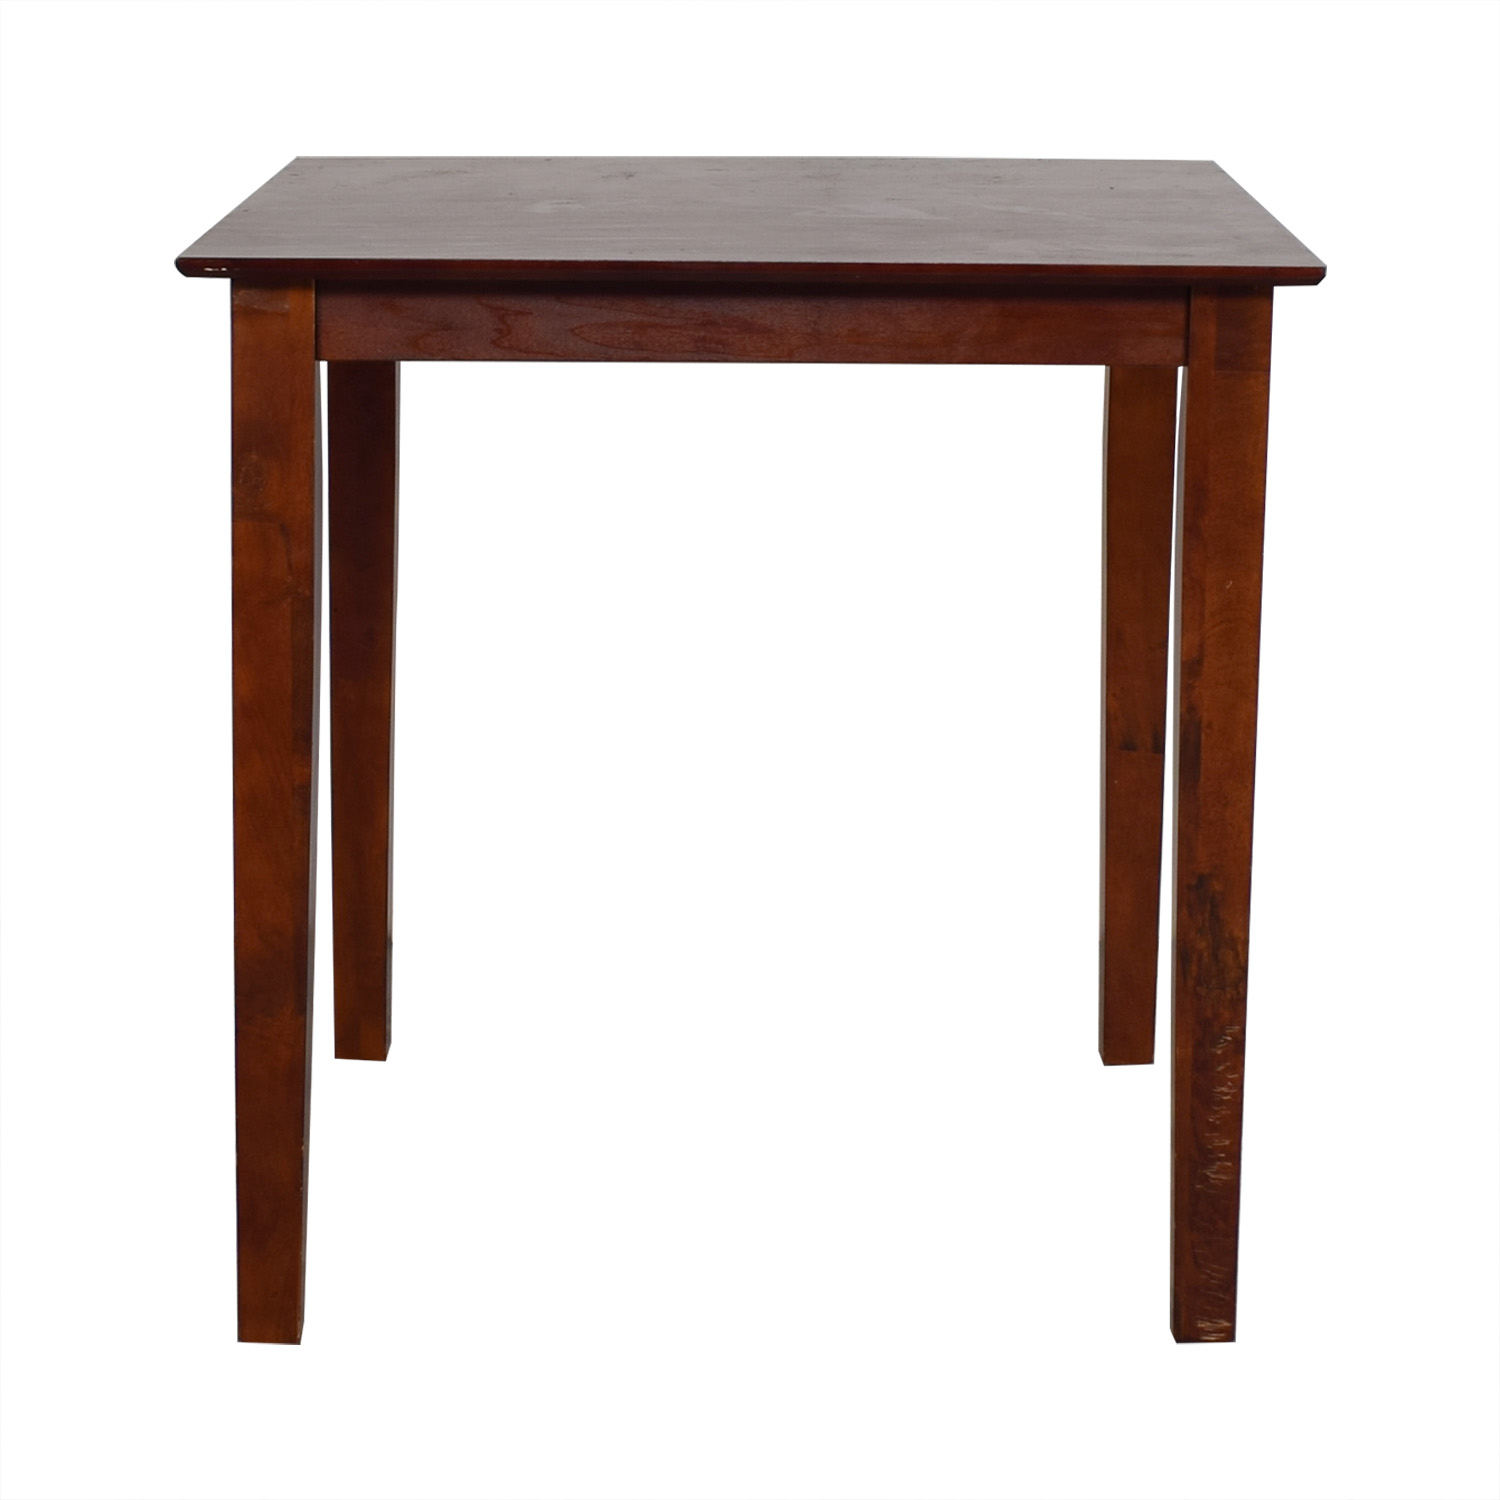 Costco Costco Counter-Height Table for sale